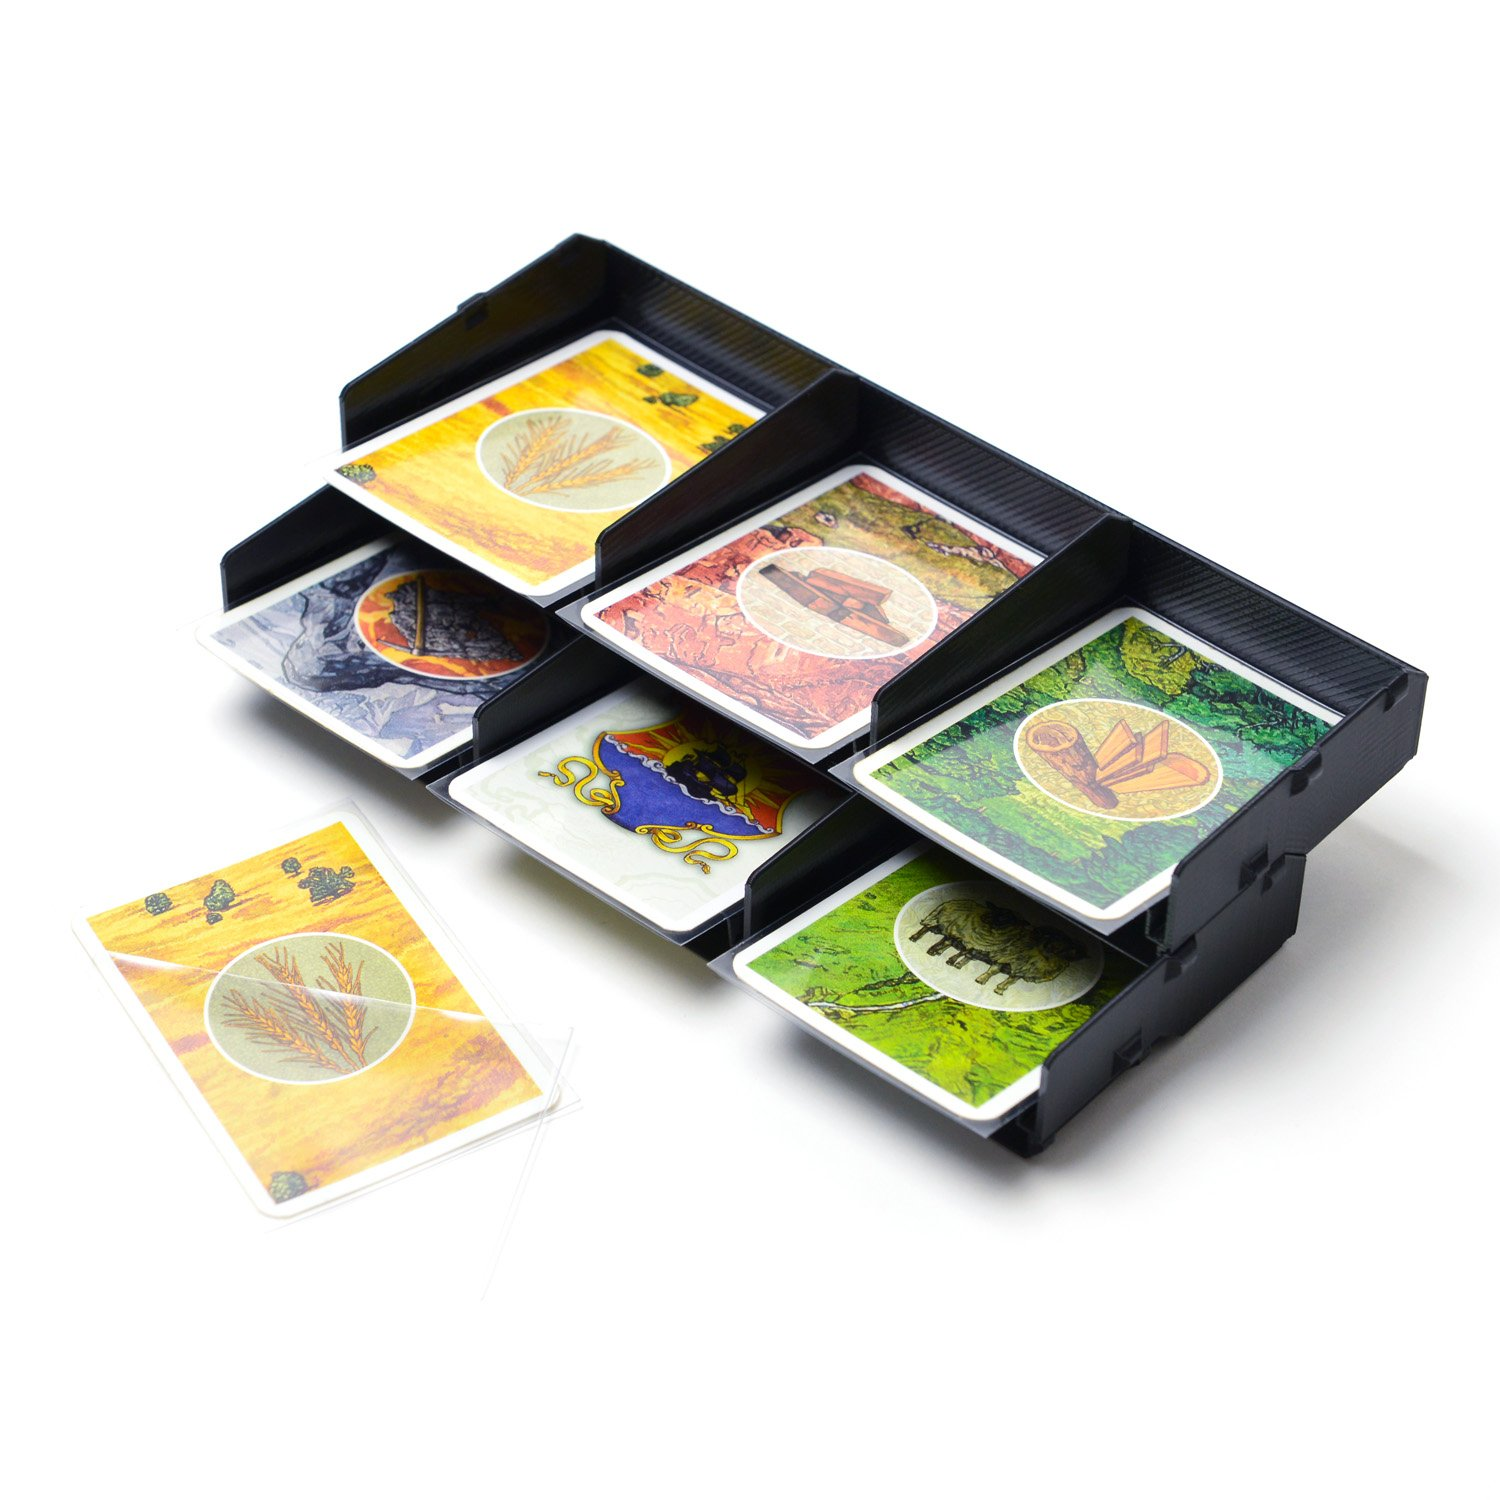 Card Tray/Box Organizer for Settlers of Catan